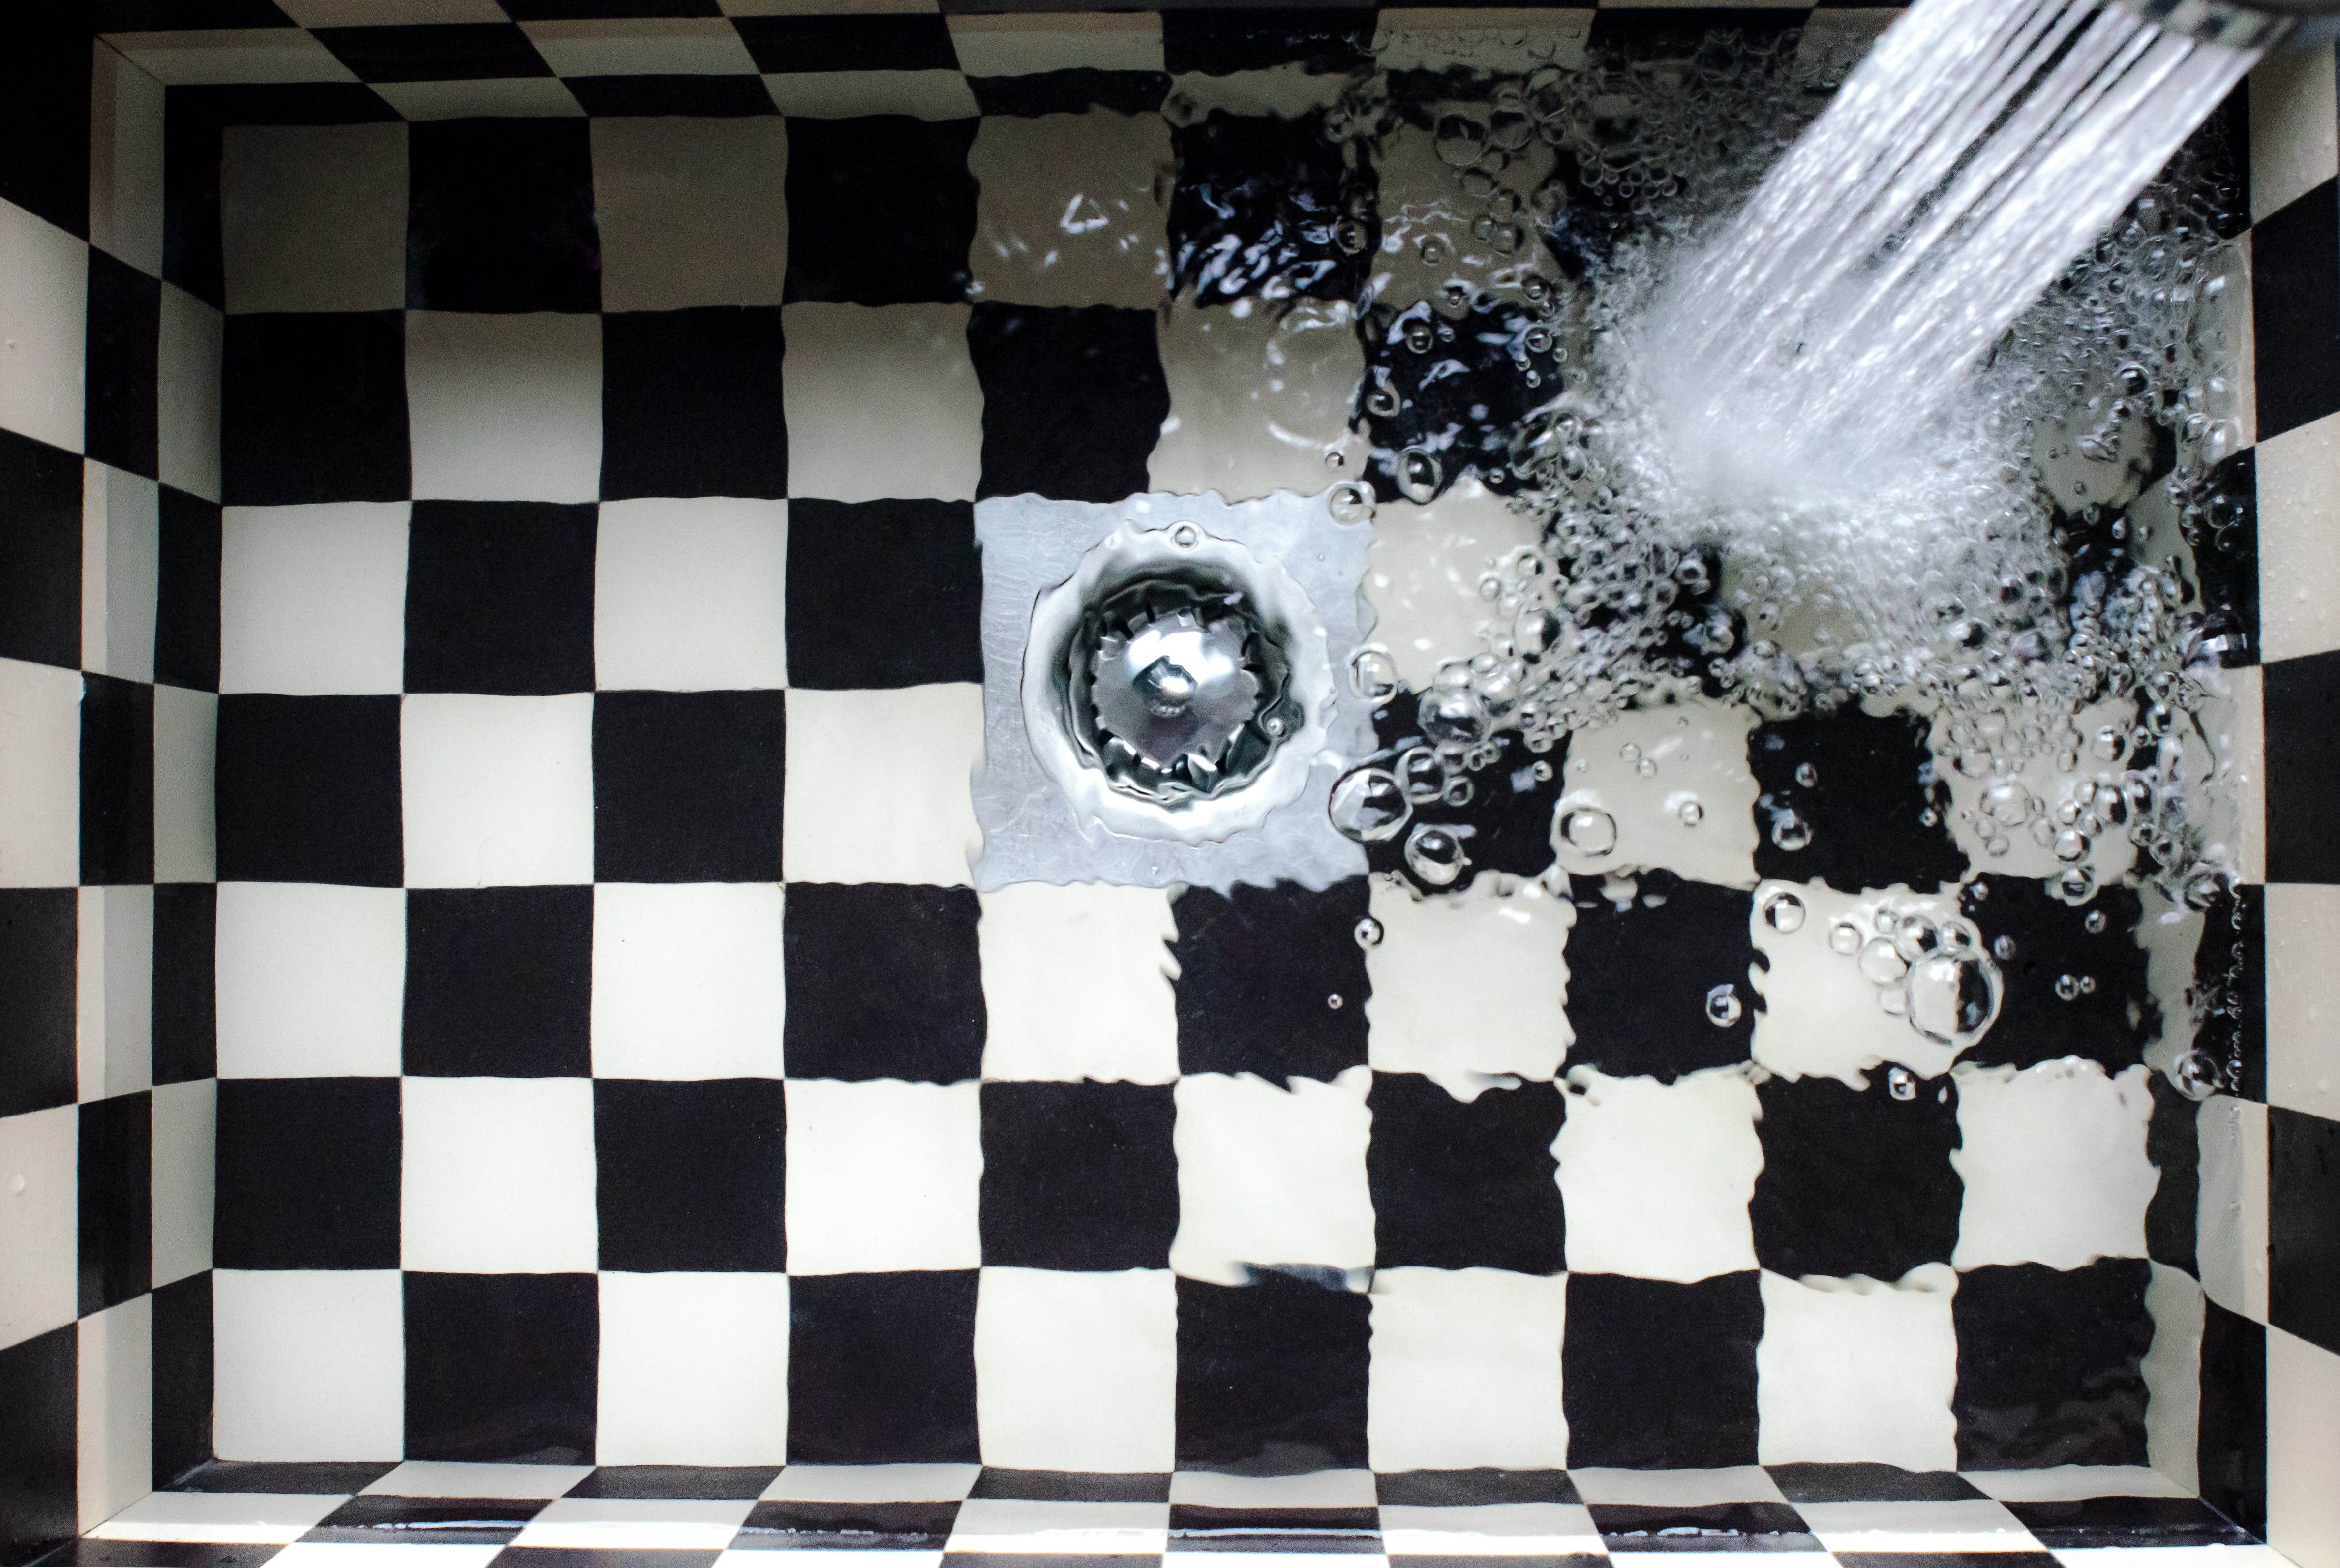 Water Flowing on White and Black Checked Bath Tub